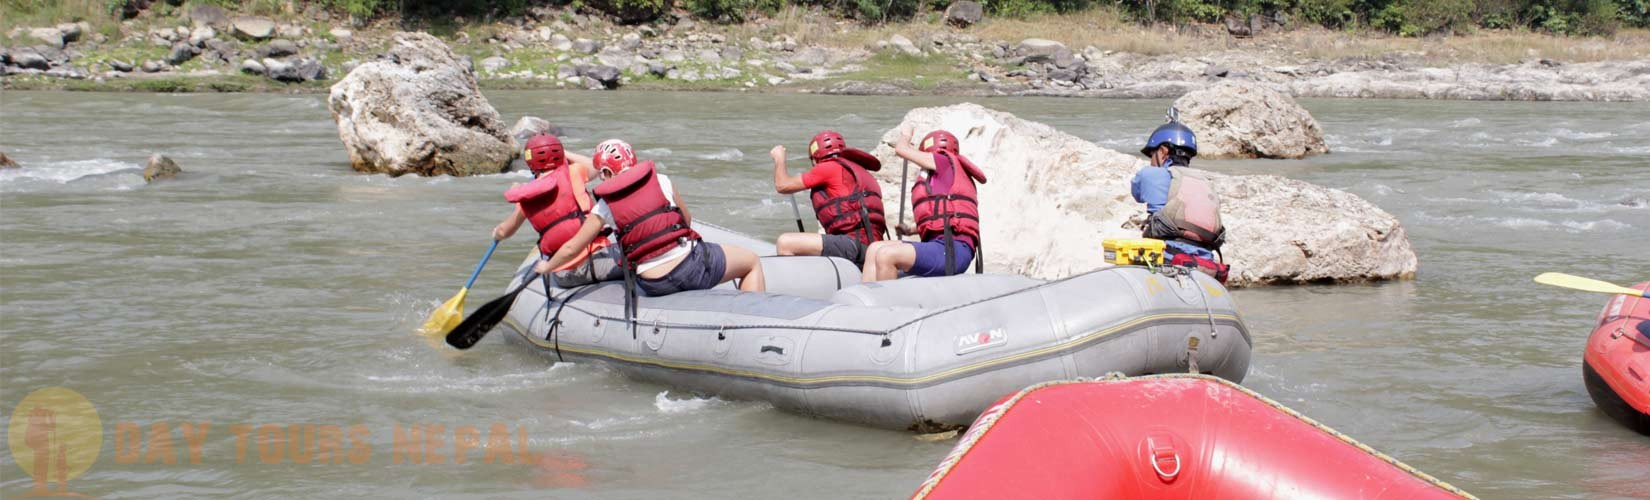 One Day Rafting in Nepal